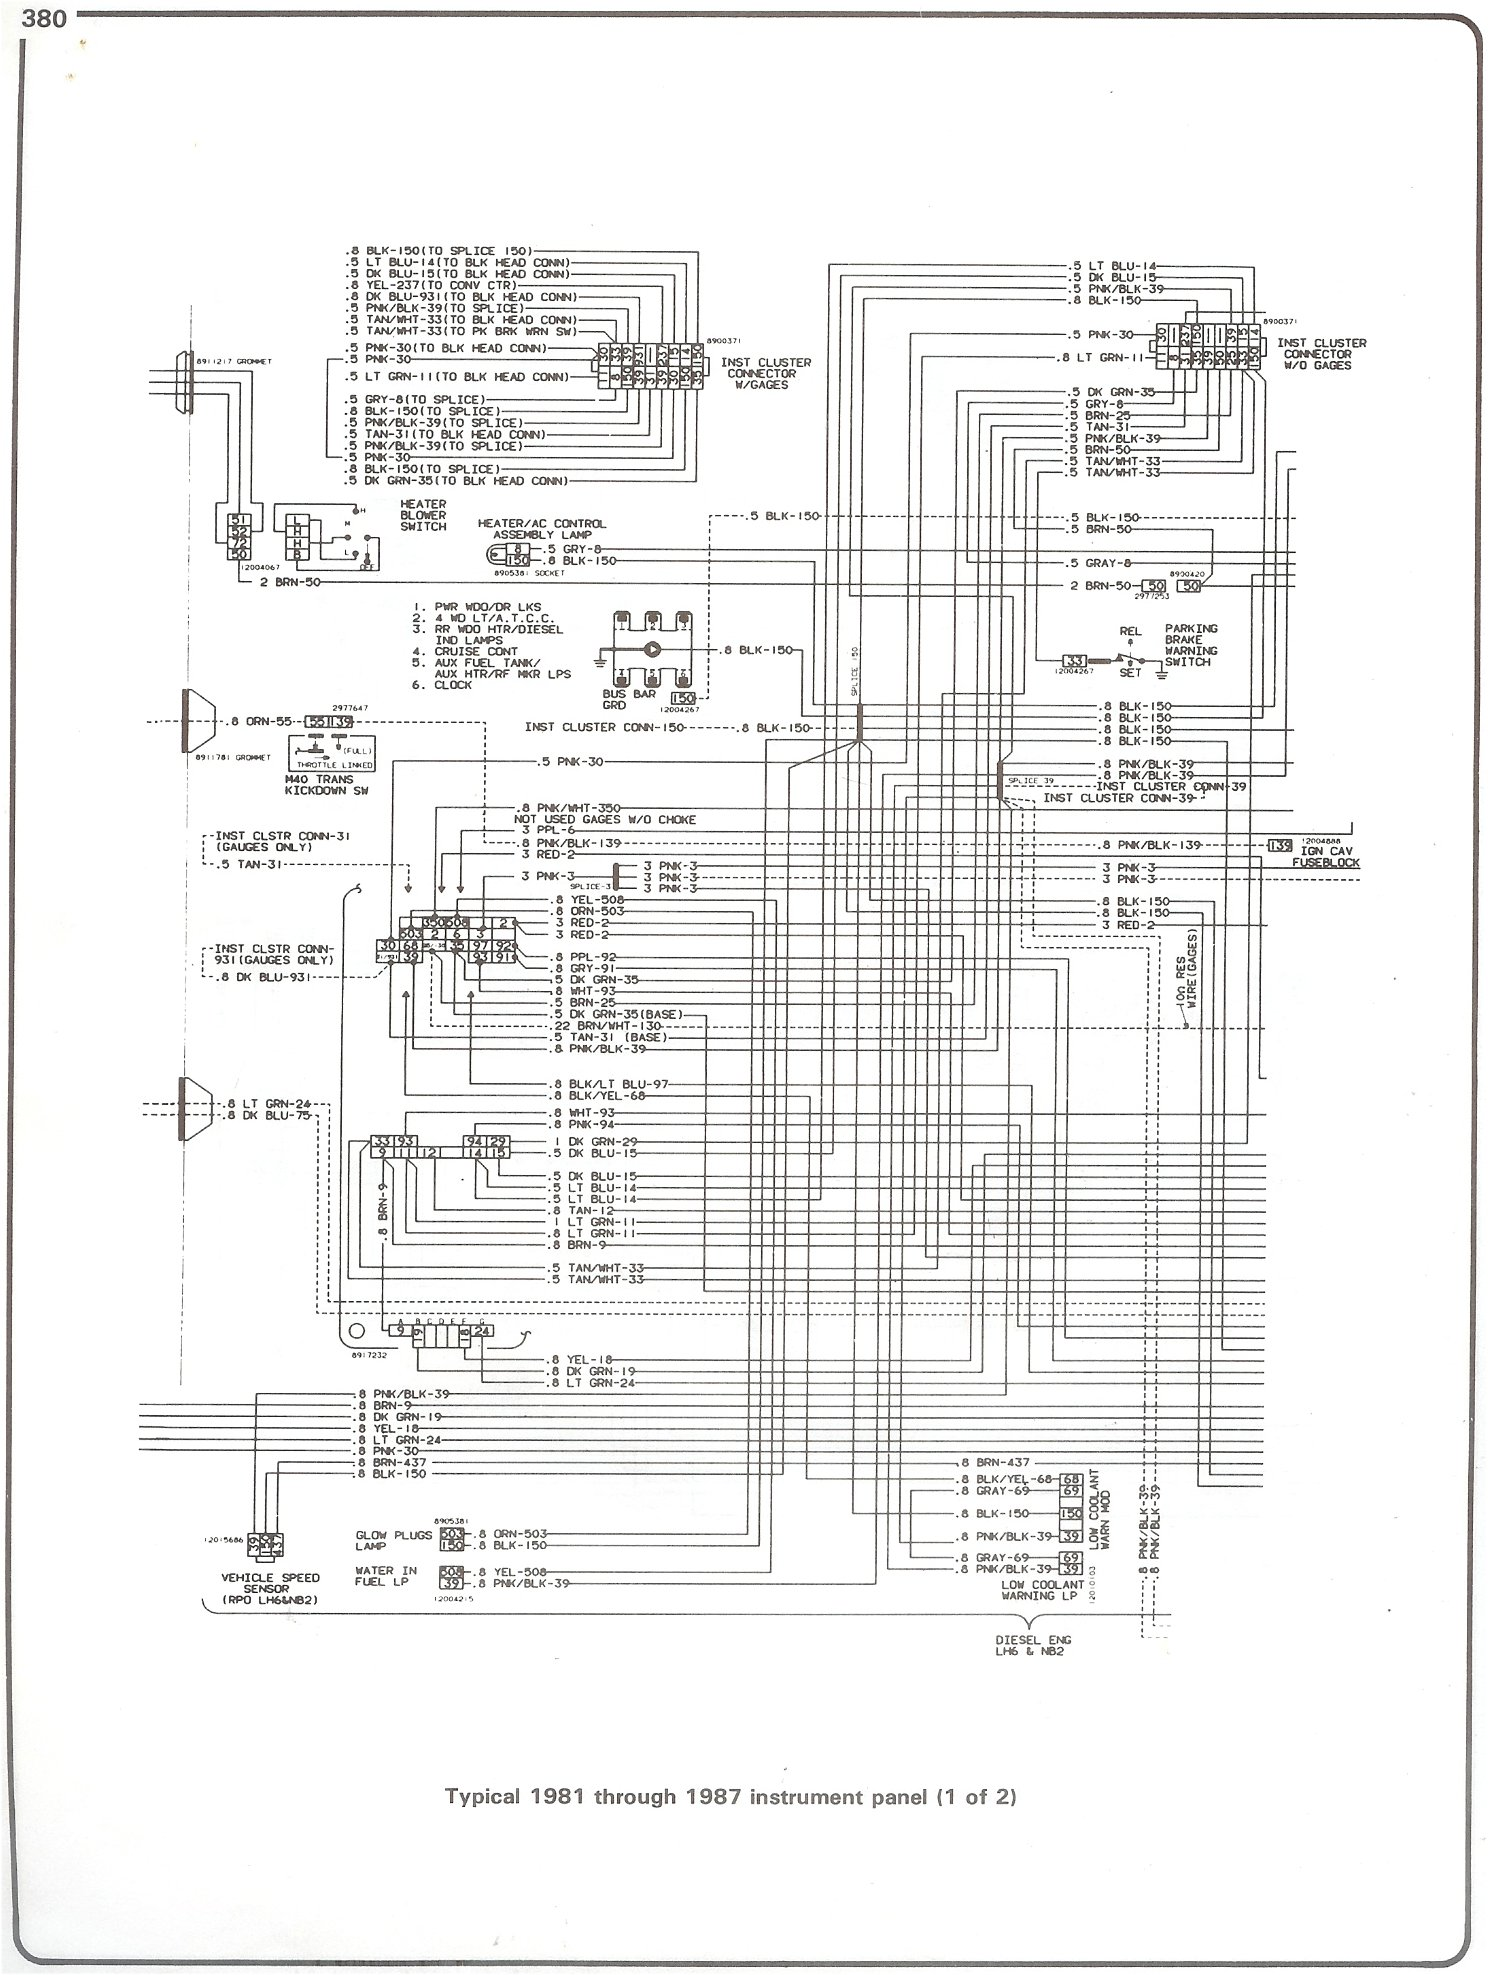 c10 wiring harness schematic. c10. wiring examples and ... 73 chevy c10 wire diagram #11